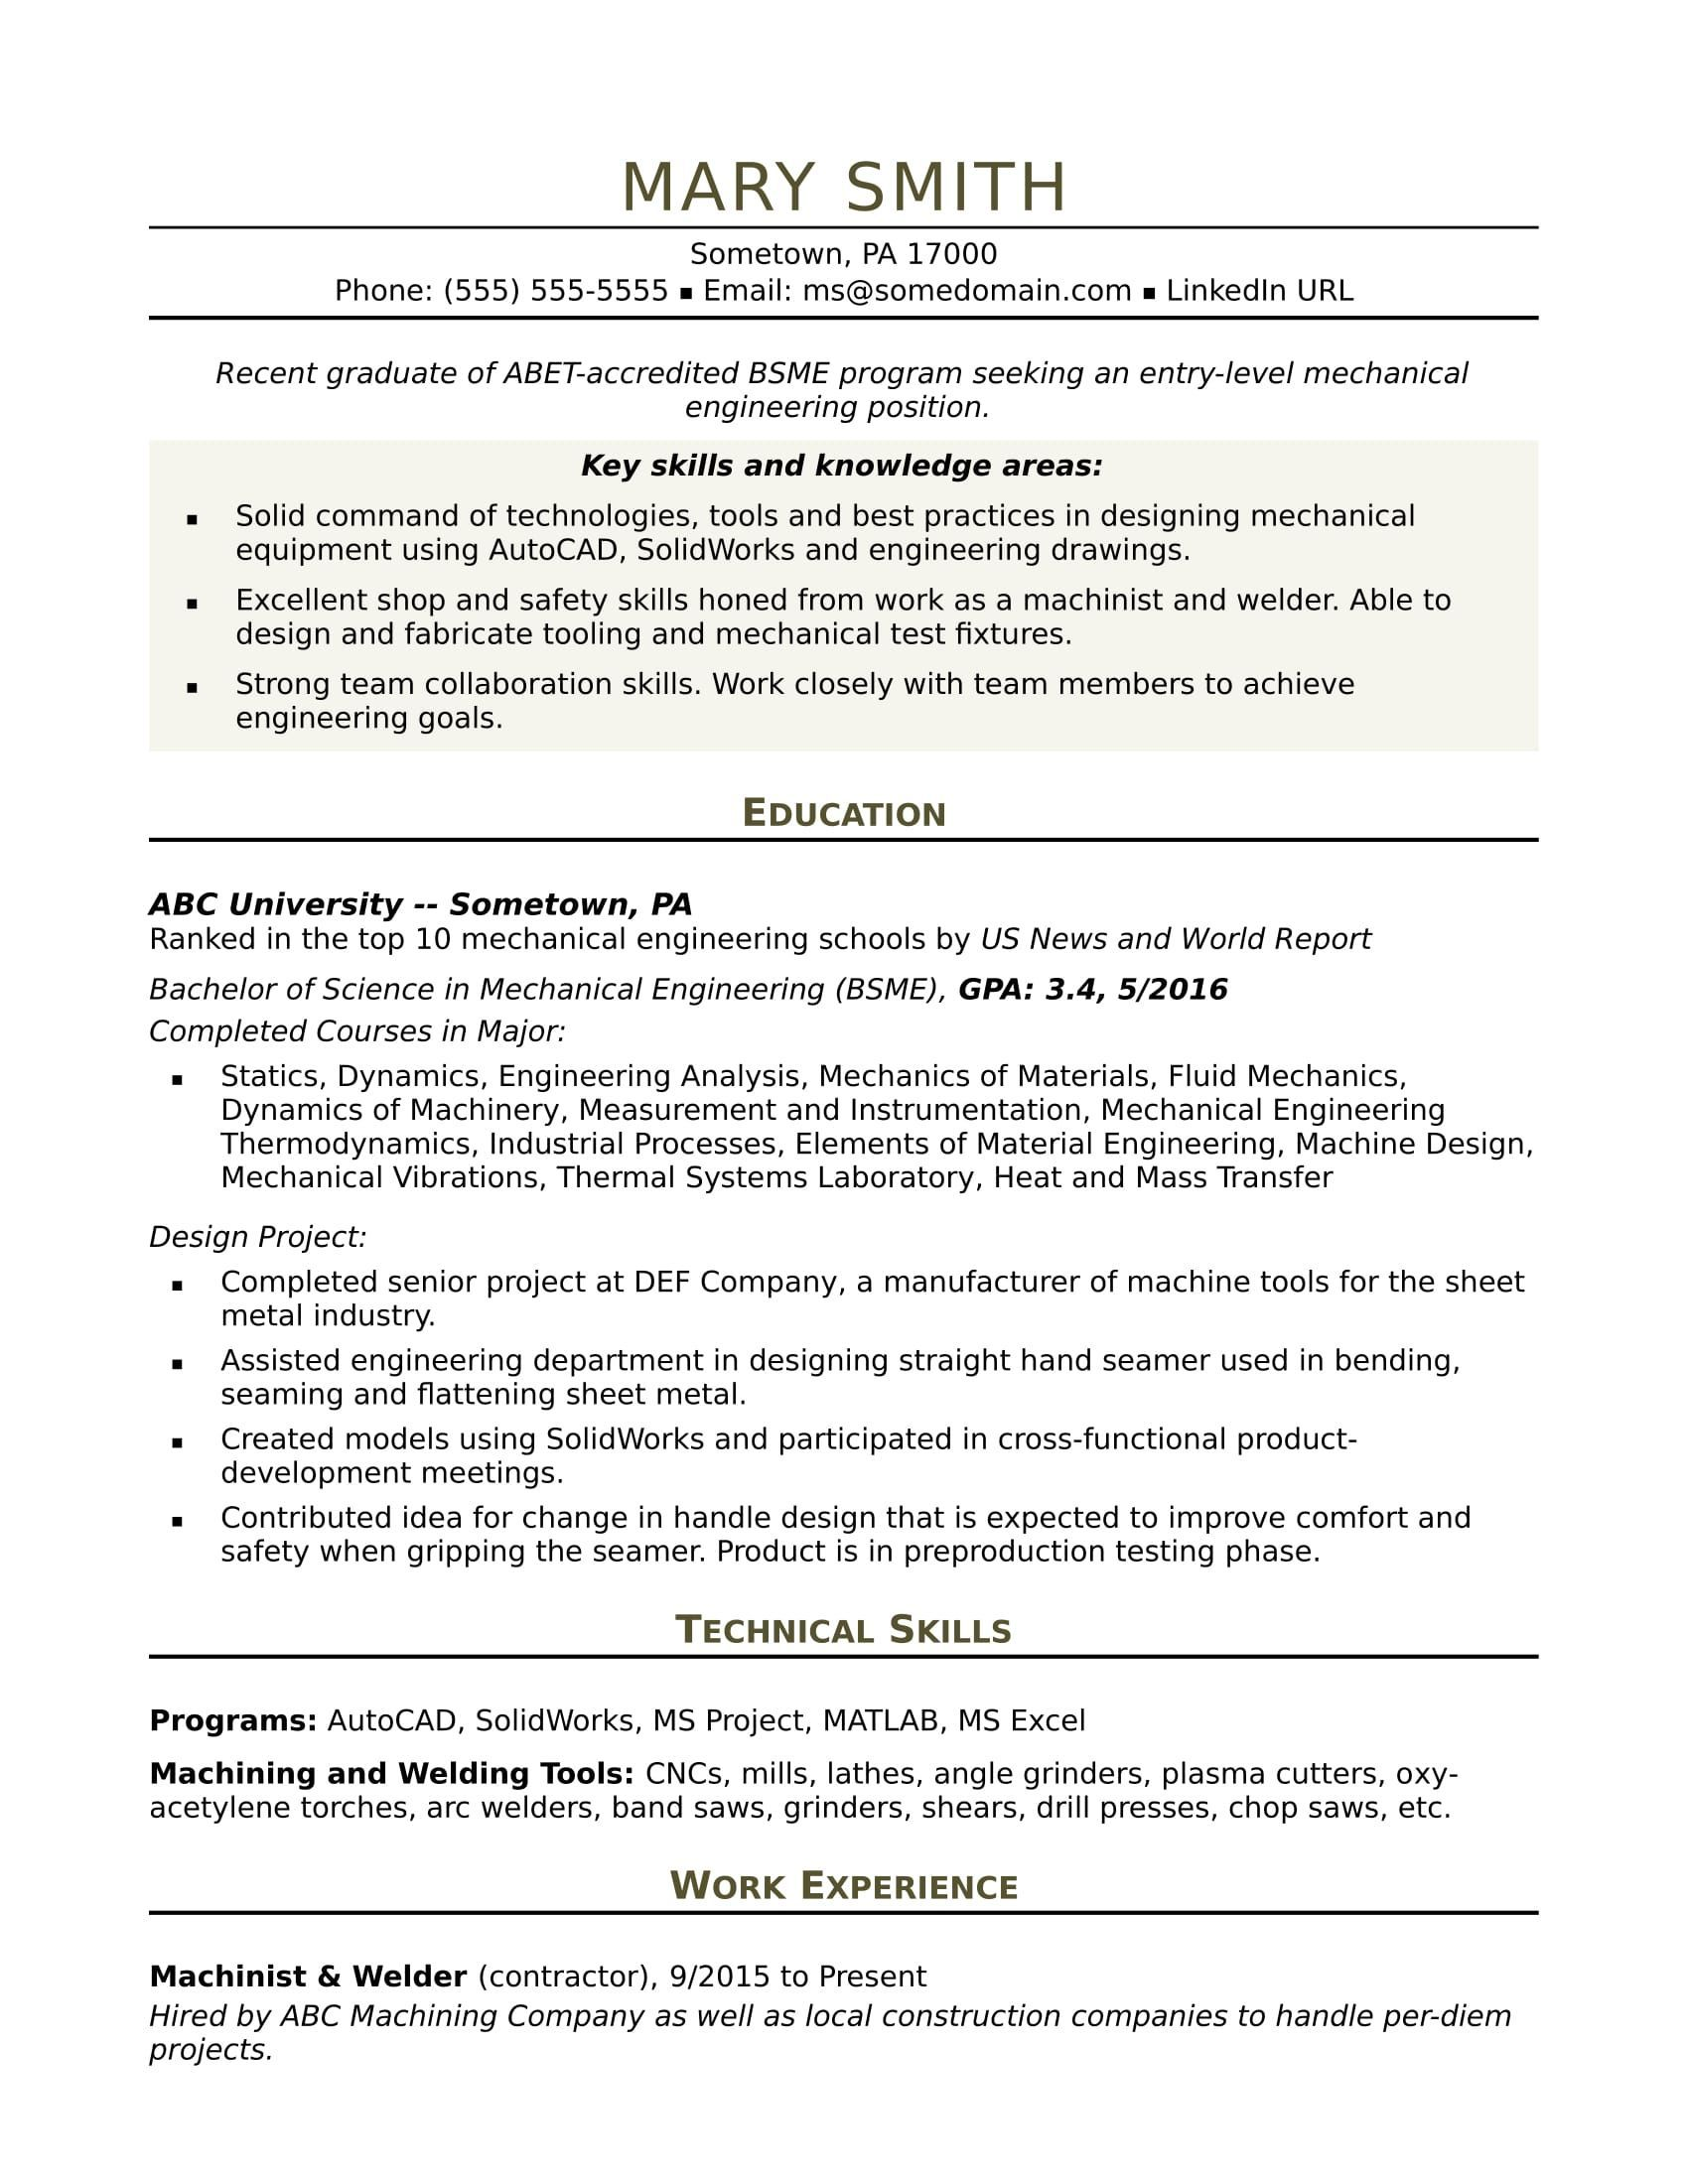 Entry Level Mechanical Engineering Resume Inspiration Sample Resume For An Entrylevel Mechanical Engineer .